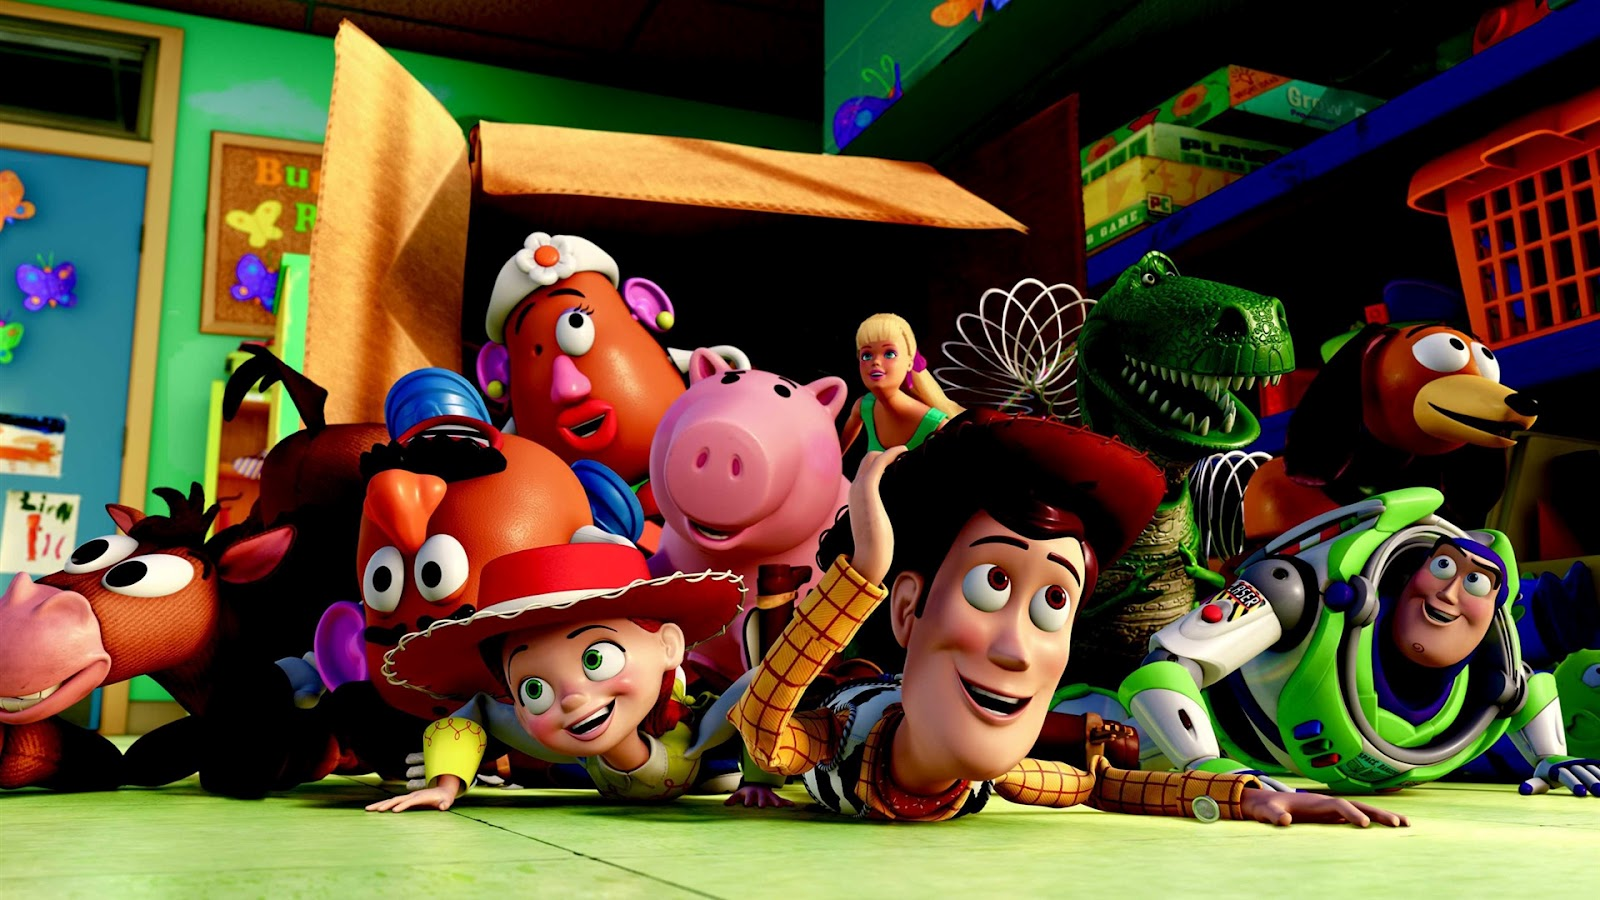 http://1.bp.blogspot.com/-z0PHwfO7fqE/UBY2fdUhunI/AAAAAAAAGqk/VKWE648q9xg/s1600/Toy-Story-3-HD-Wallpaper-Full-HD-1080p-Movie-20.jpg